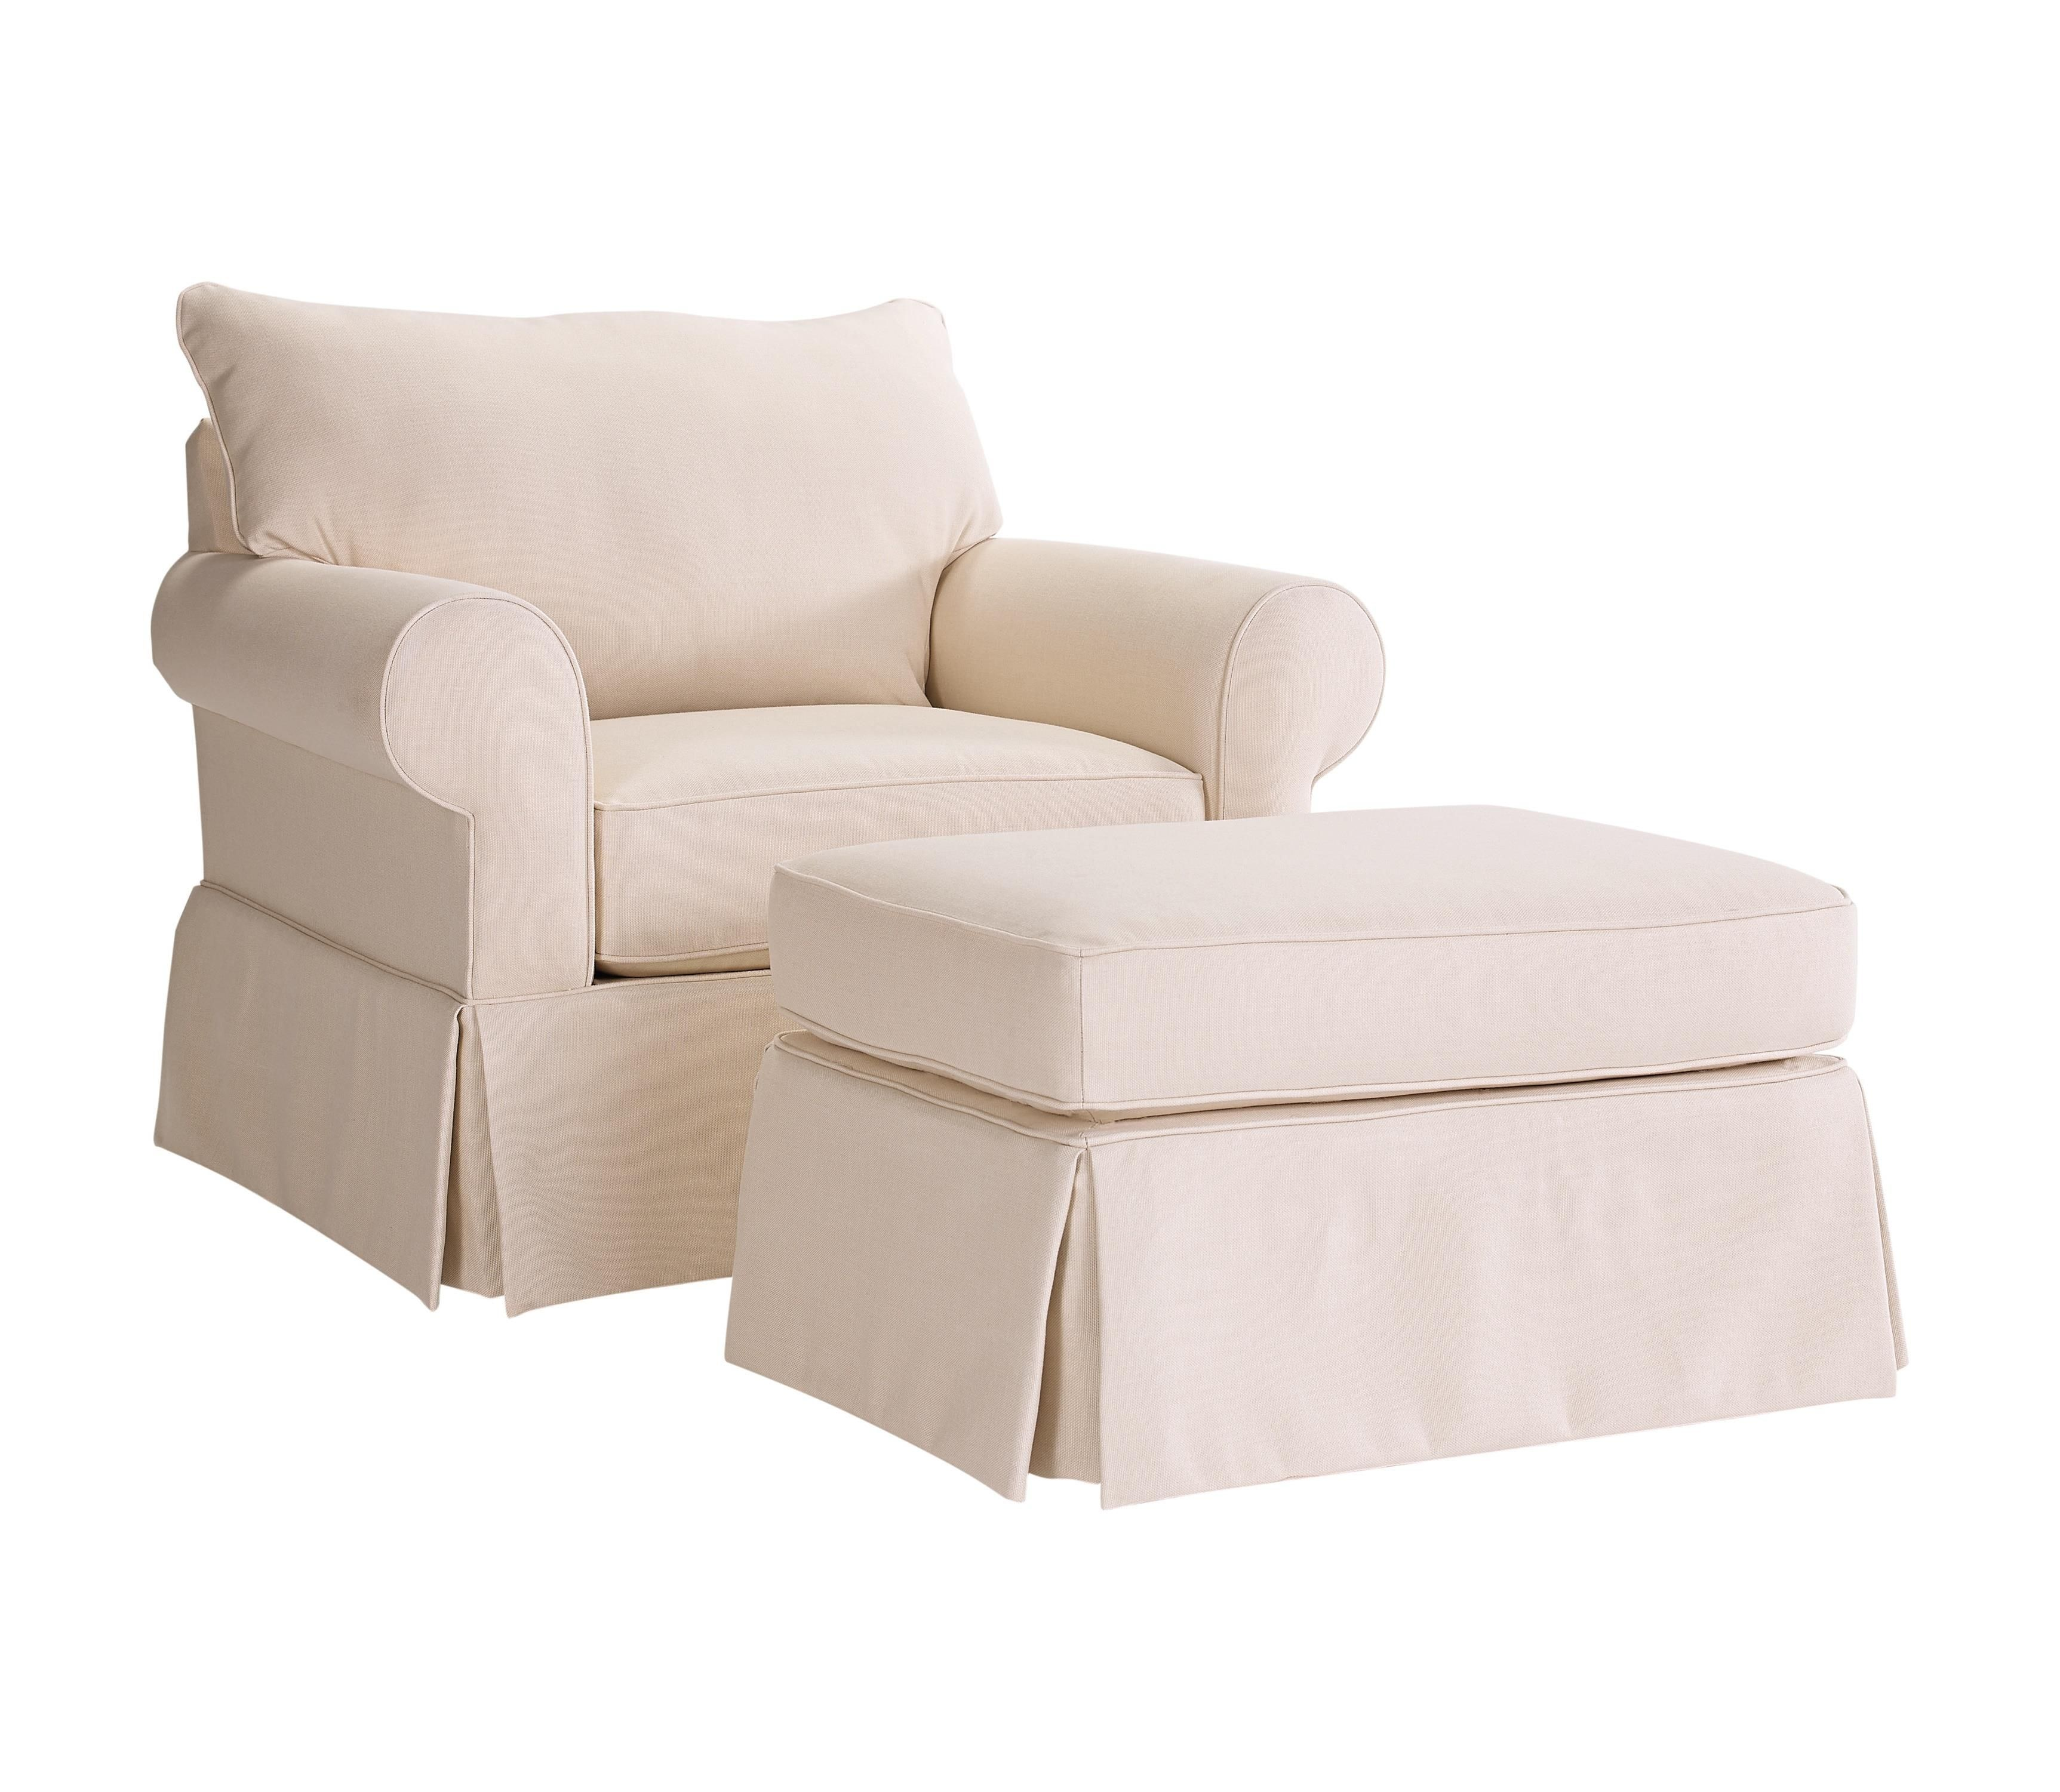 Stupendous Uptown Traditional Chair And Ottoman Set By Broyhill Evergreenethics Interior Chair Design Evergreenethicsorg